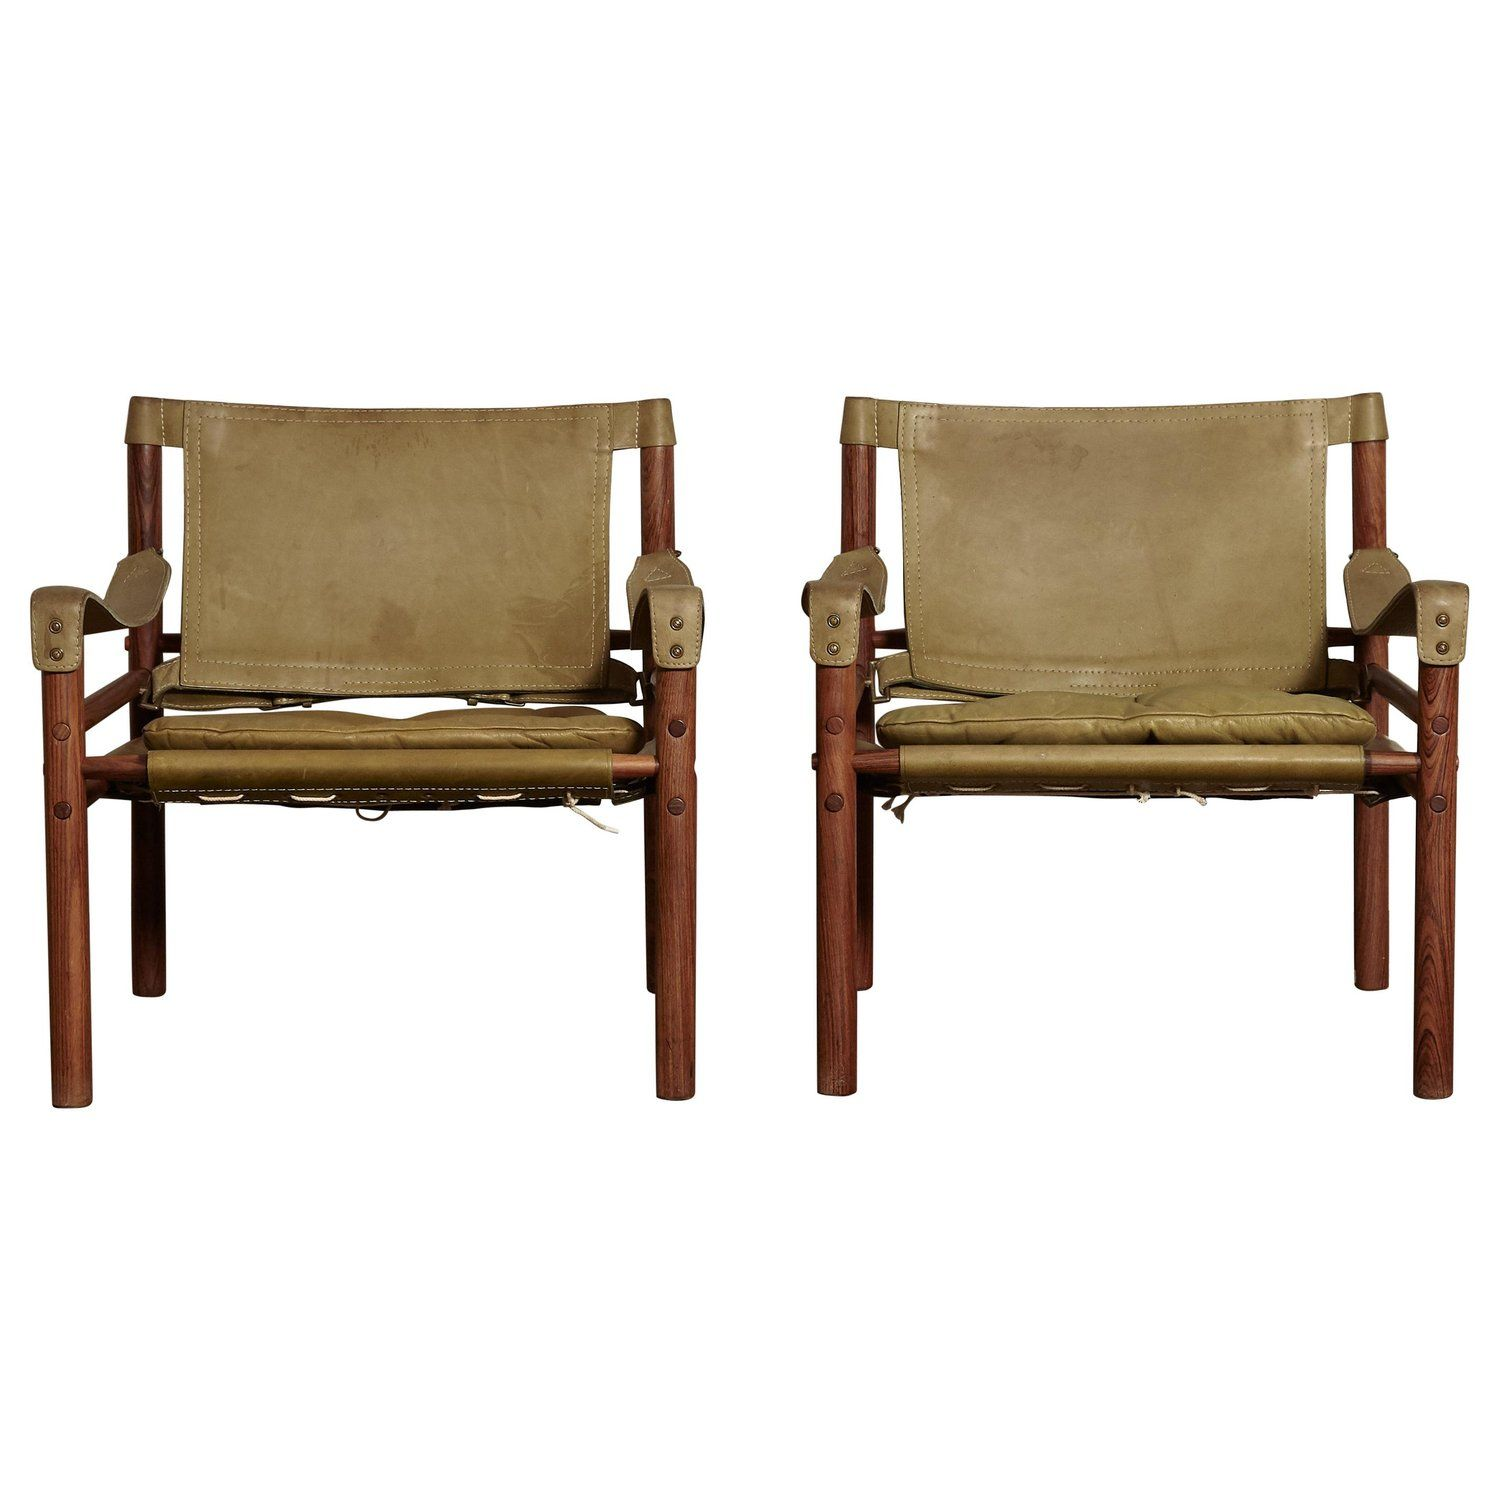 Safari Chairs Pair Of Arne Norell Safari Chairs Green Leather Sweden 1970s In